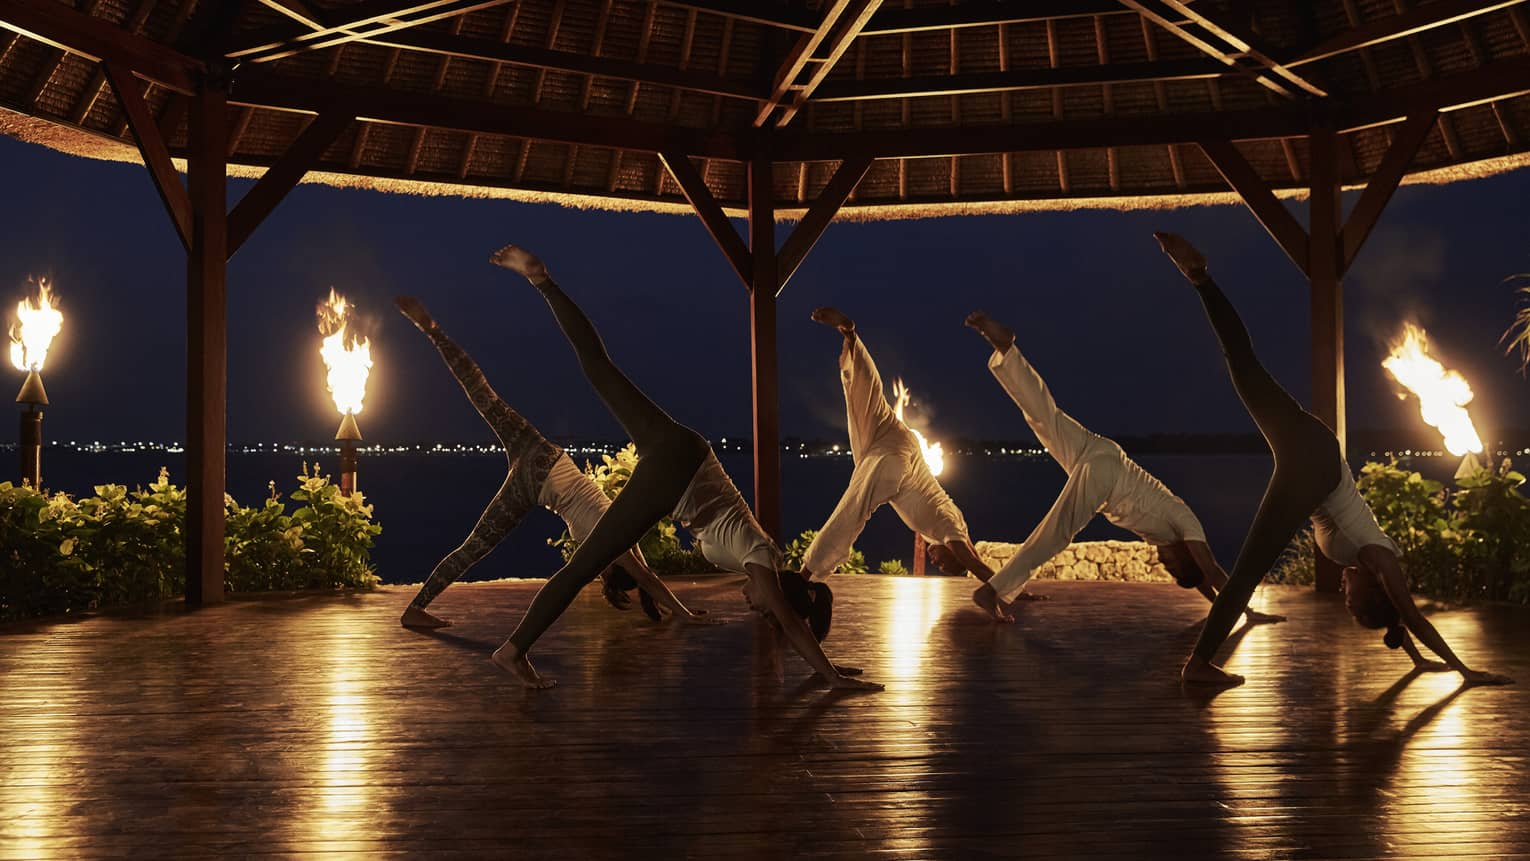 Guests with their legs outstretched, participating in yoga on a fire-lit pavilion